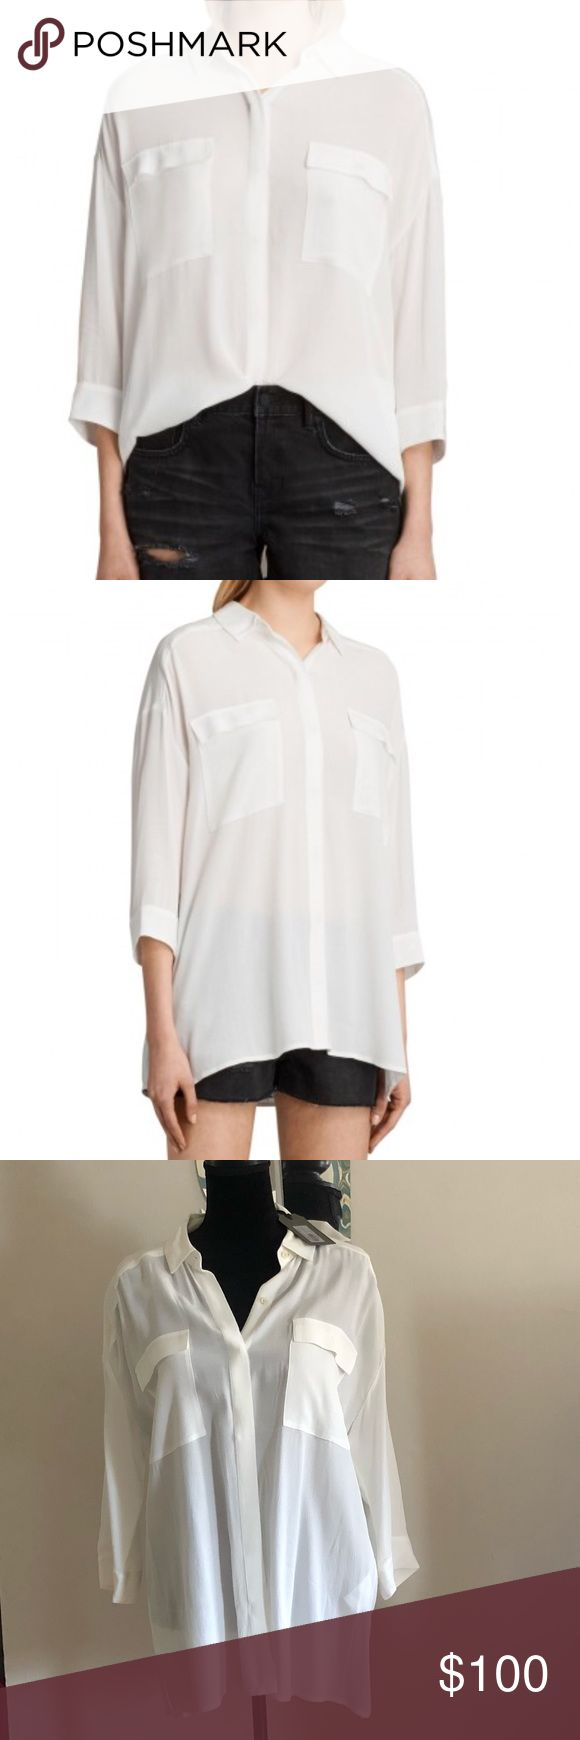 All Saints Milson Shirt Chalk White Refresh your weekend style with this Milson Shirt from AllSaints.  Featuring classic chest pockets, a curved collar and short side slits, this military inspired shirt is crafted from a soft, fluid fabric for a relaxed and easy silhouette.  Use size chart in last photo   It pairs perfectly with skinny jeans or shorts. 100% viscose. Color: Chalk Sz L  Ask questions please. Normally Ships within 48hrs. Gift 🎁 w purchase. Poshmark Ambassador. Trusted seller…